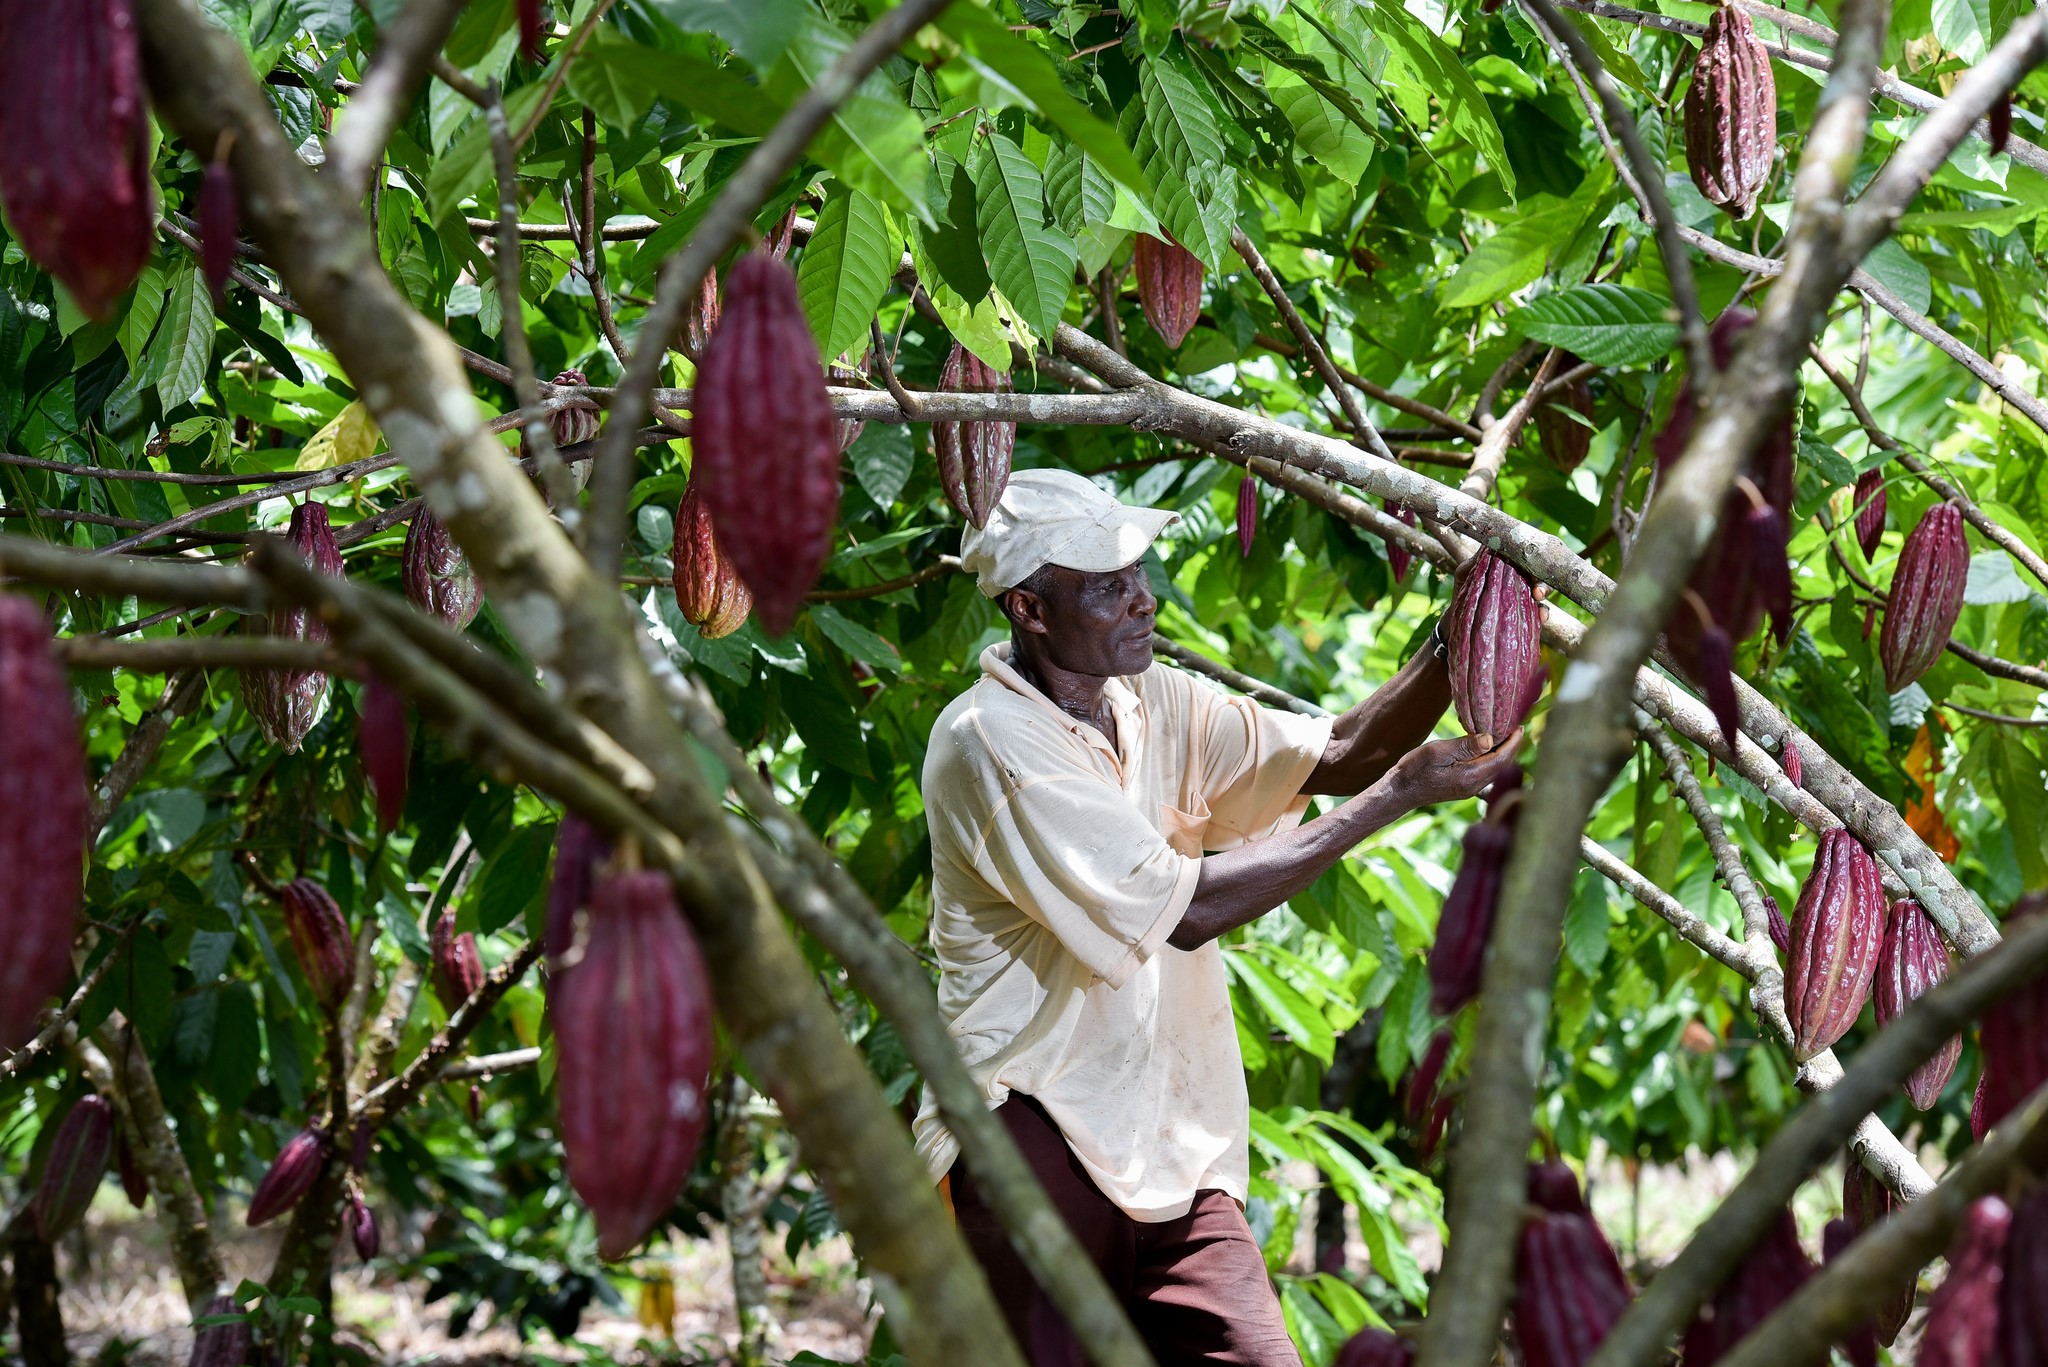 <p>Cocoa farming in Guaviare, Colombia. Photo by Neil Palmer/CIAT</p>